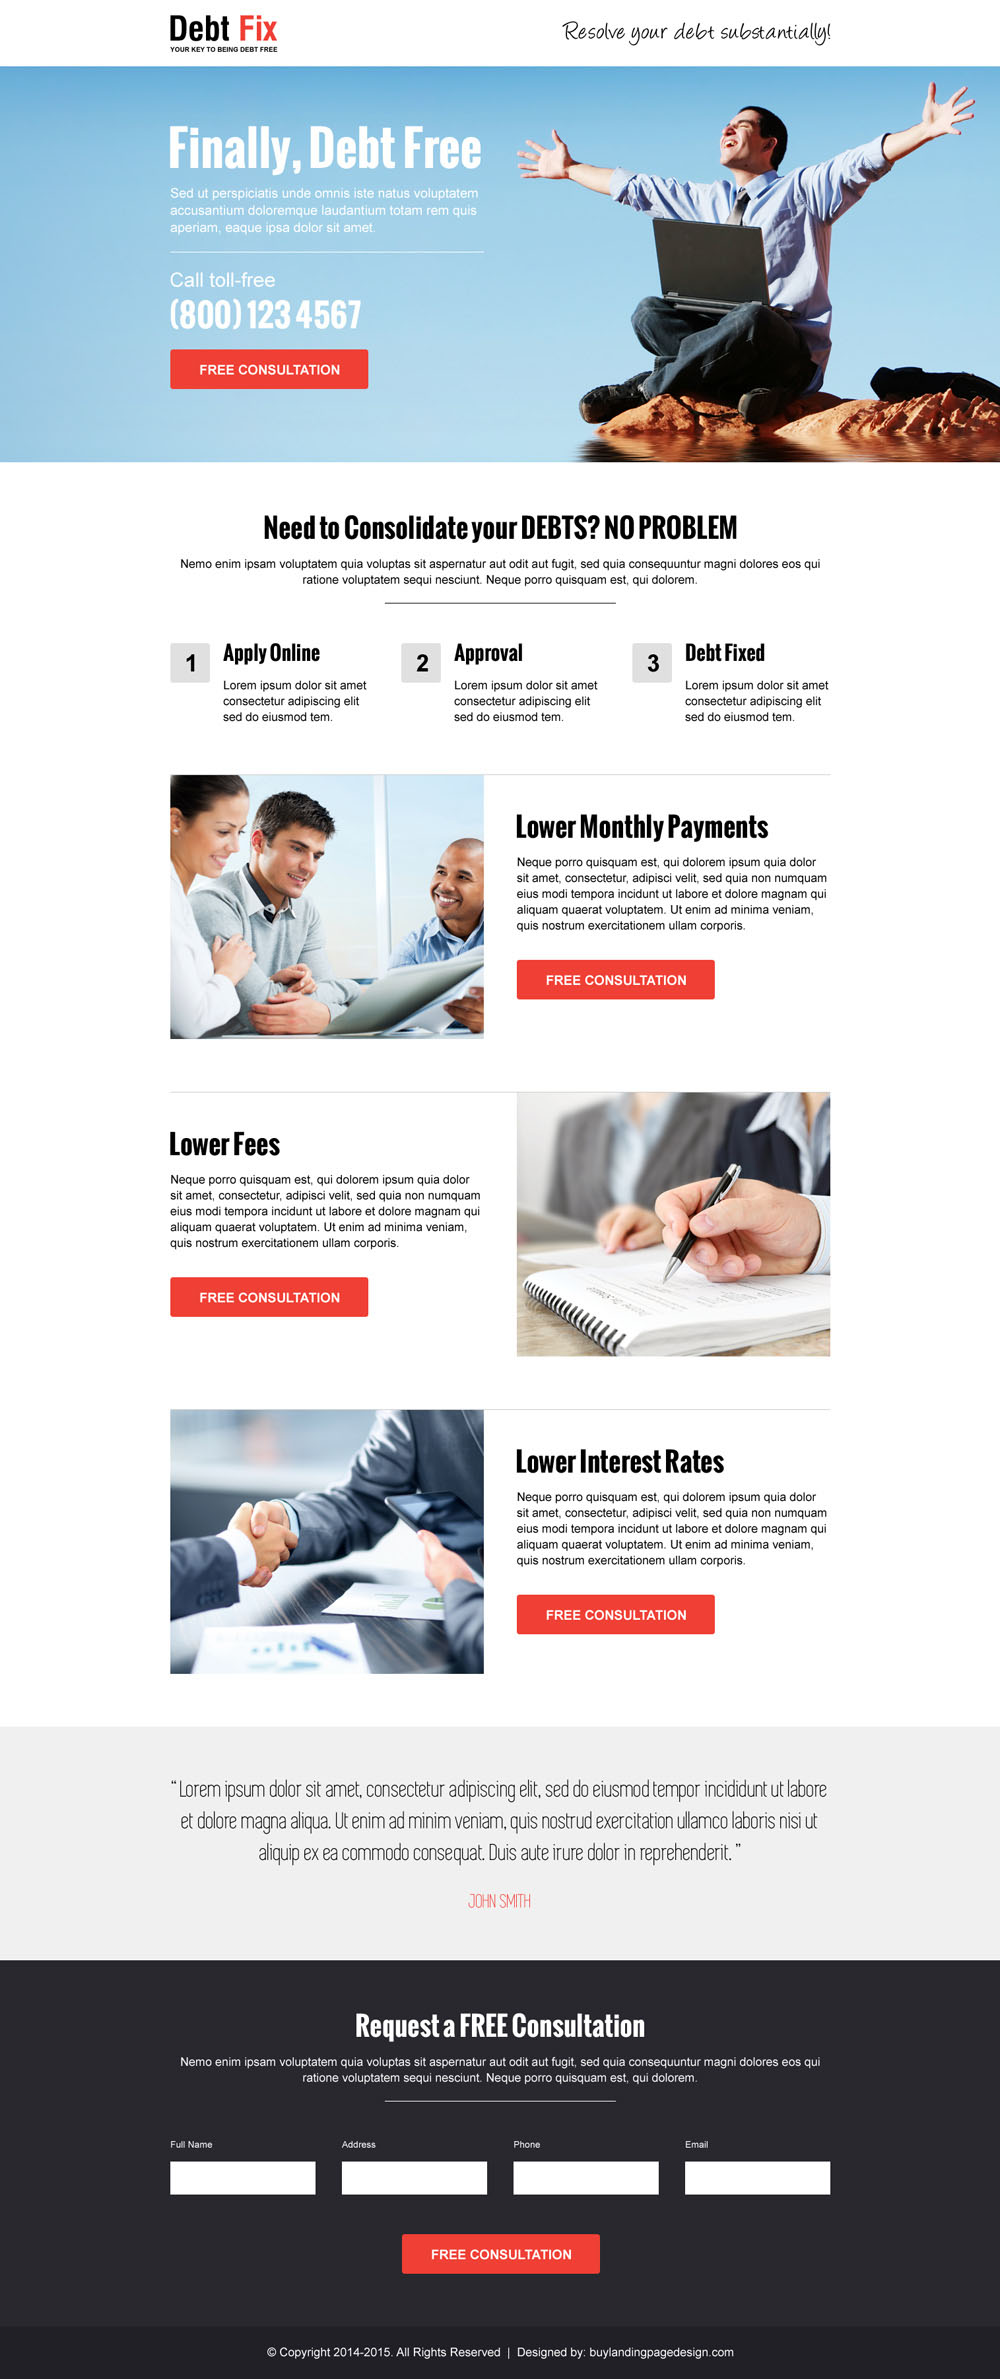 consolidate-your-debts-cta-lead-capture-landing-page-design-template-038